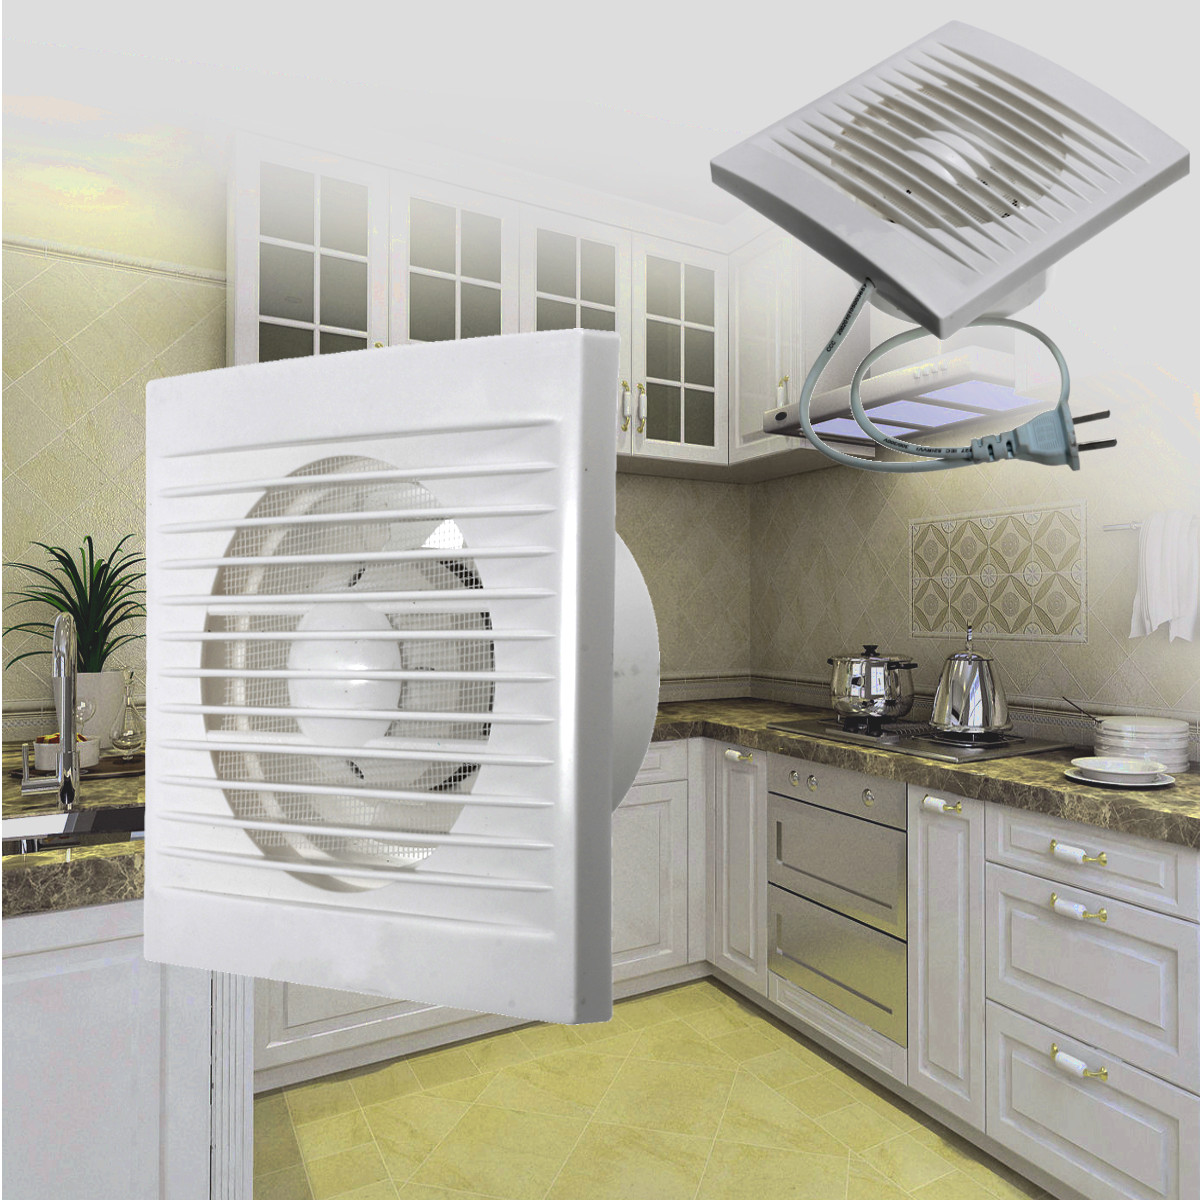 Bathroom Window Extractor Fan compare prices on bathroom extractor fans- online shopping/buy low